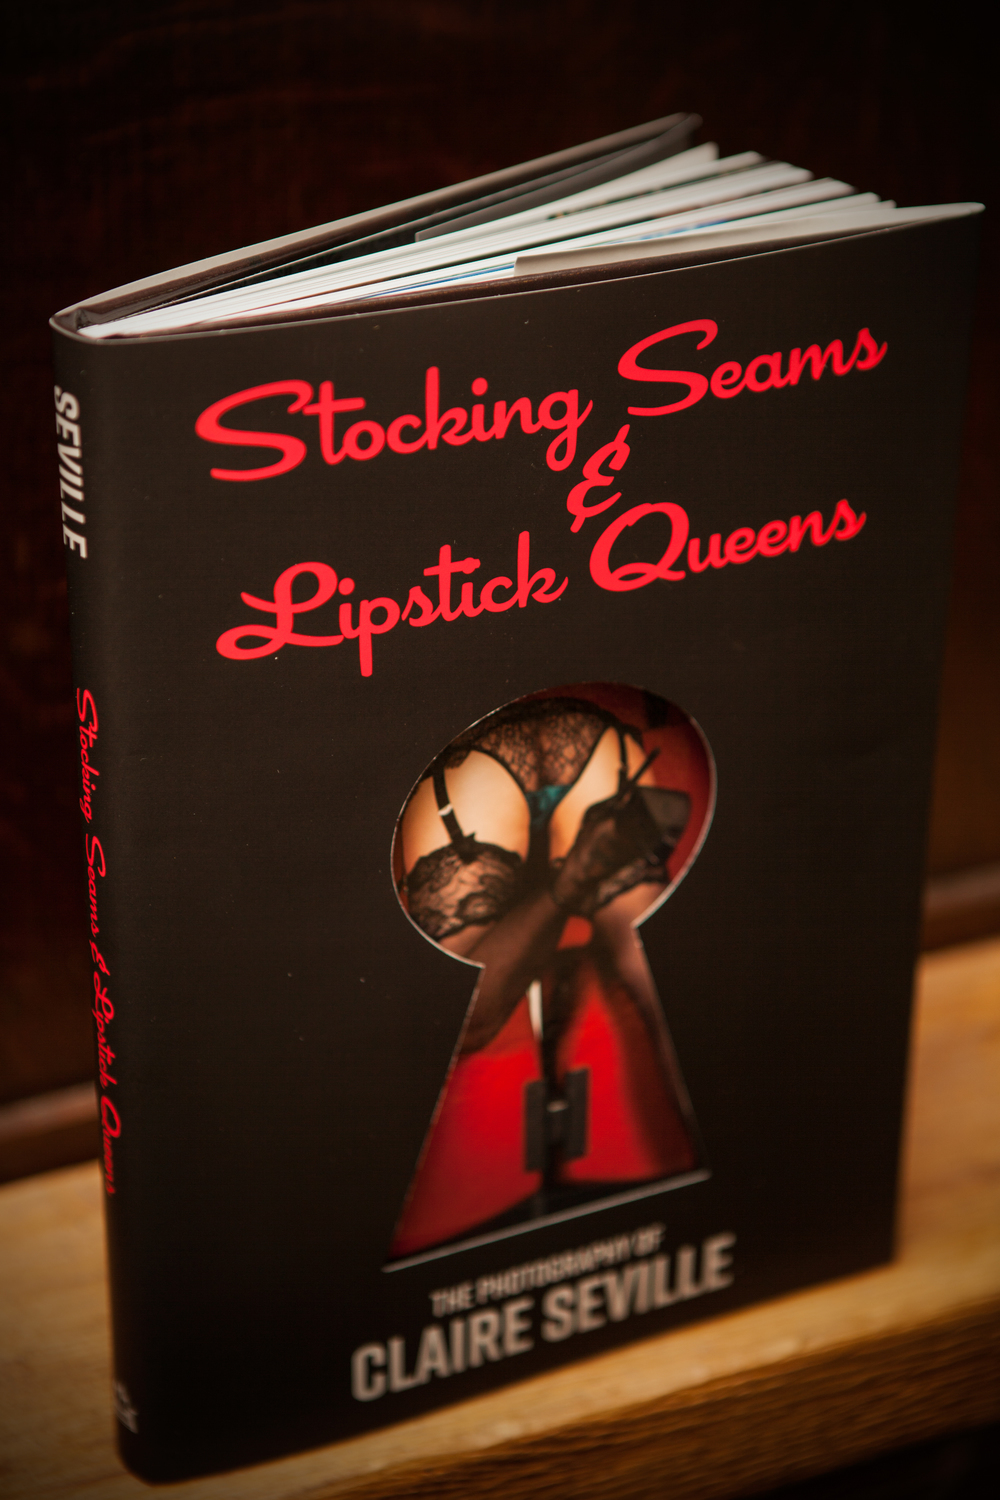 Stocking Seams & Lipstick Queens by Claire Seville